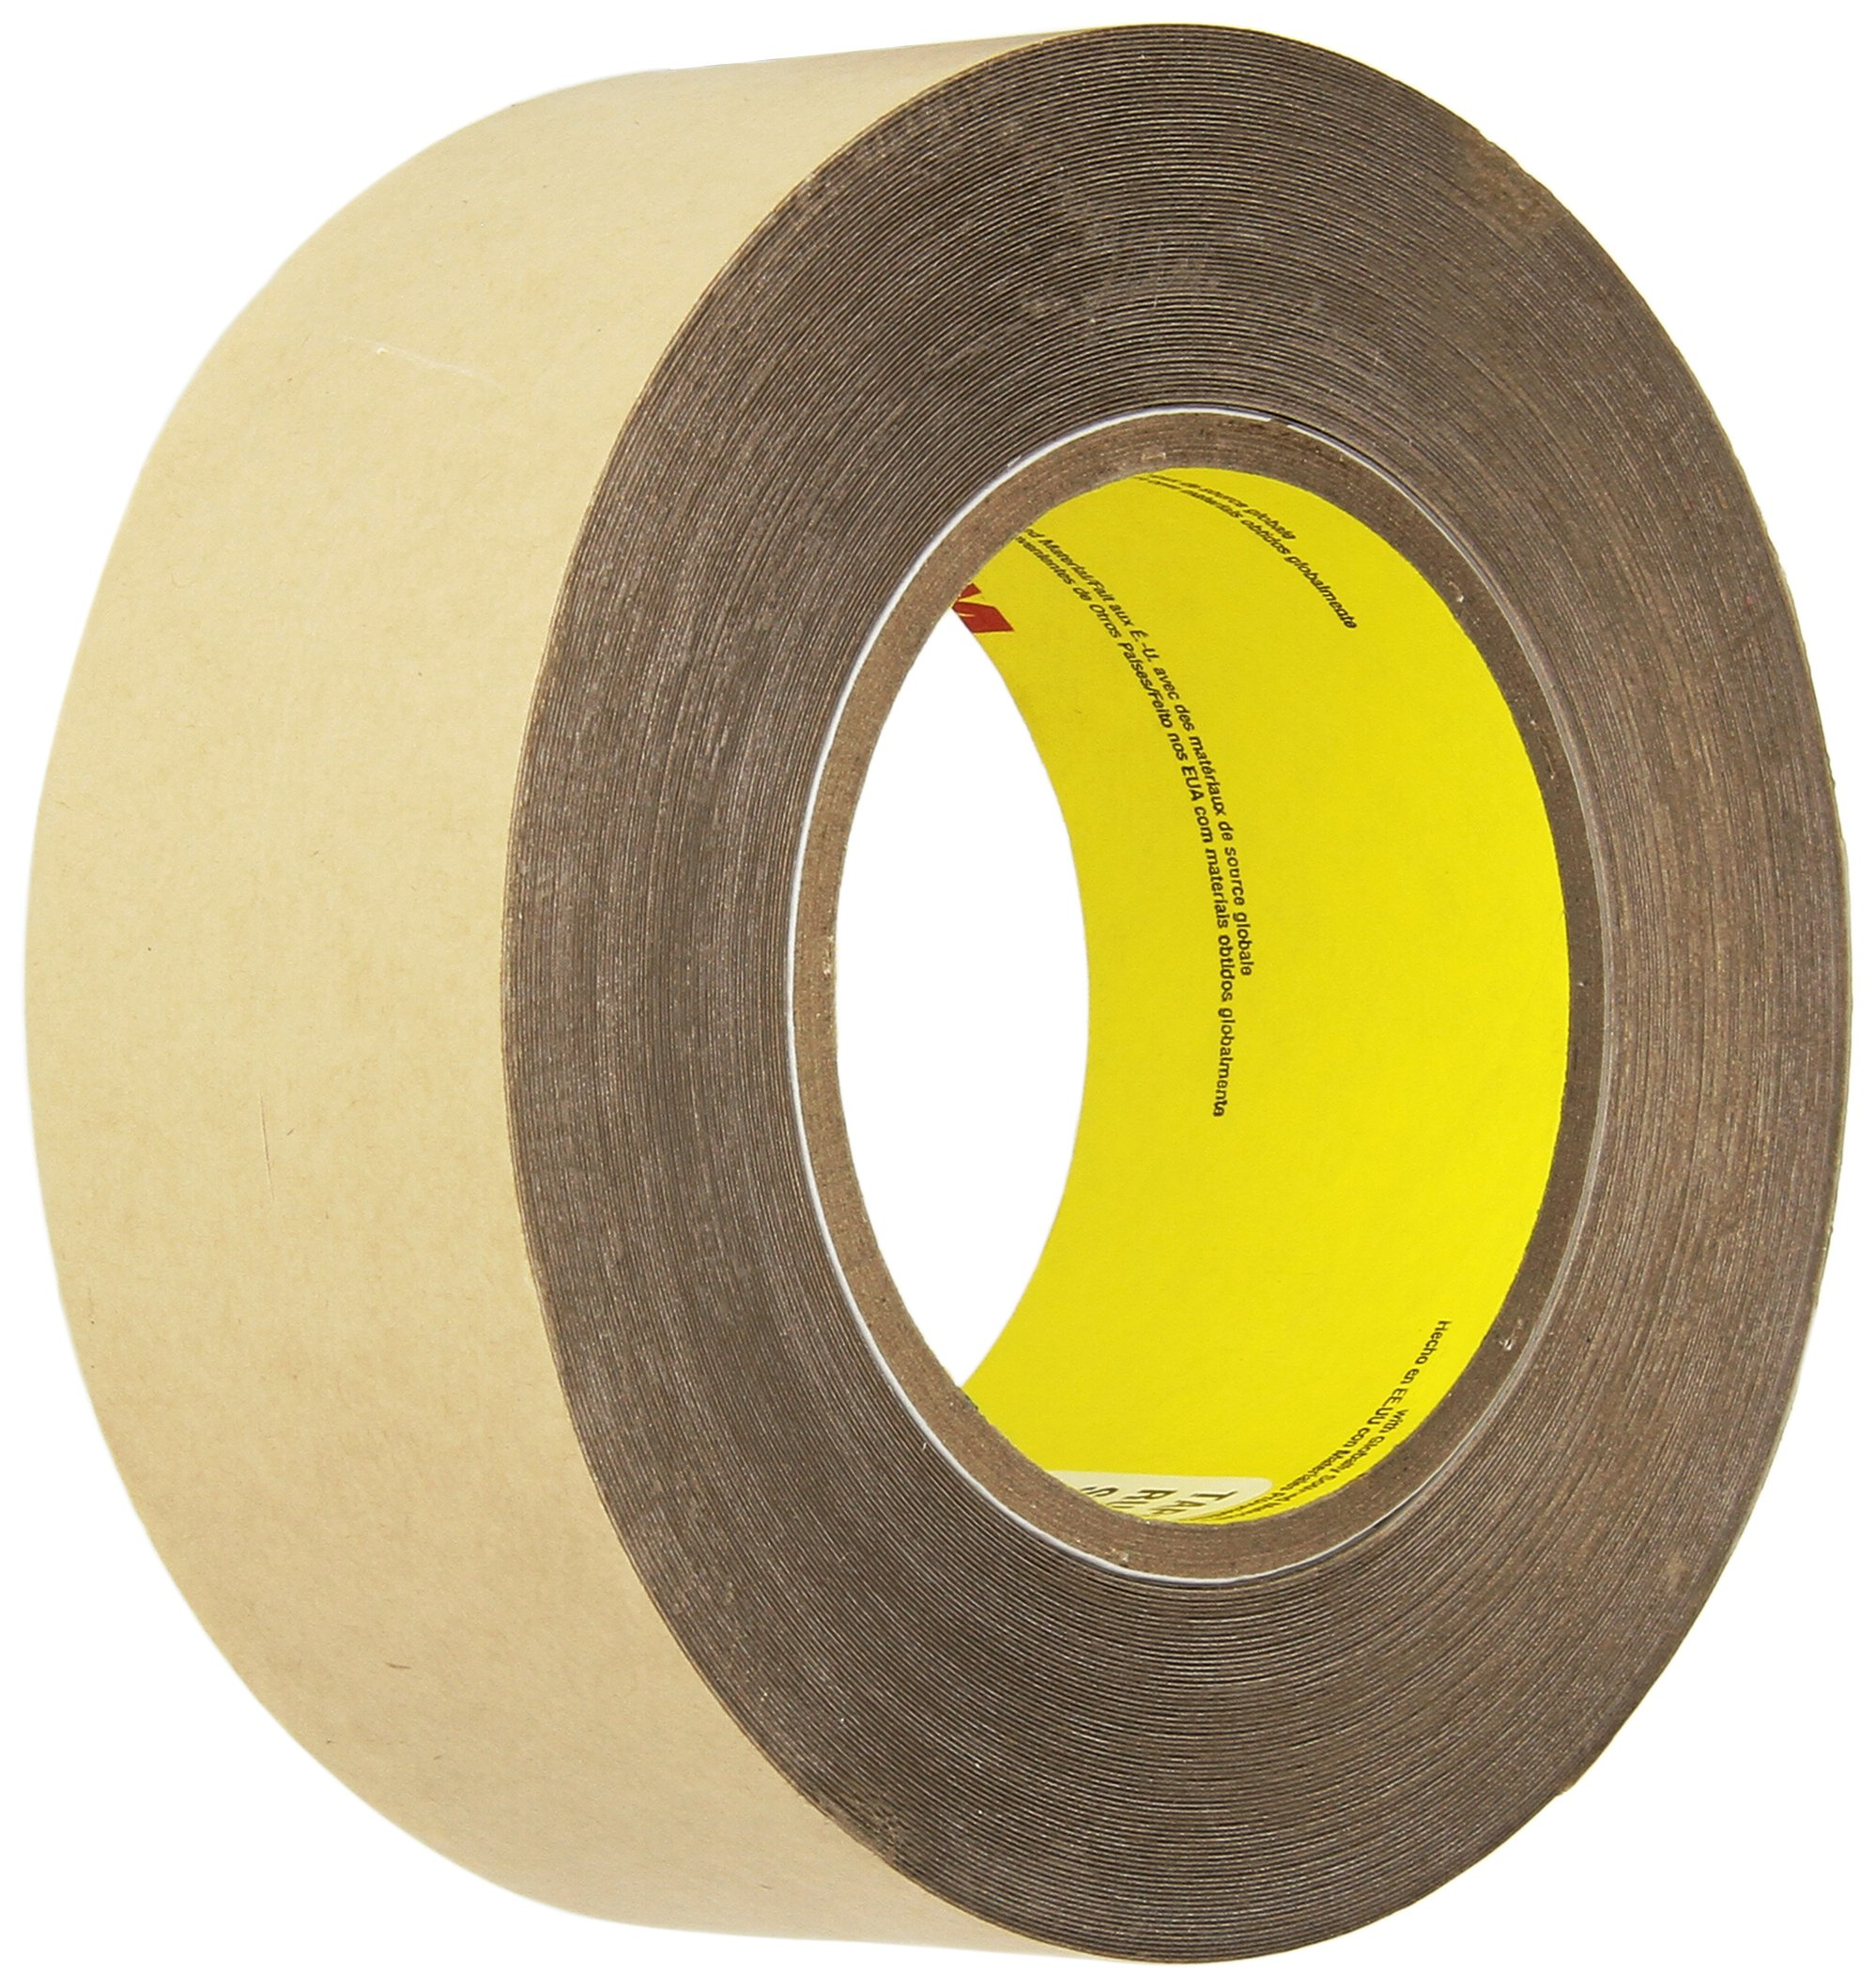 3M All Weather Flashing Tape 8067 Tan, 2 in x 75 ft Slit Liner (1 roll)